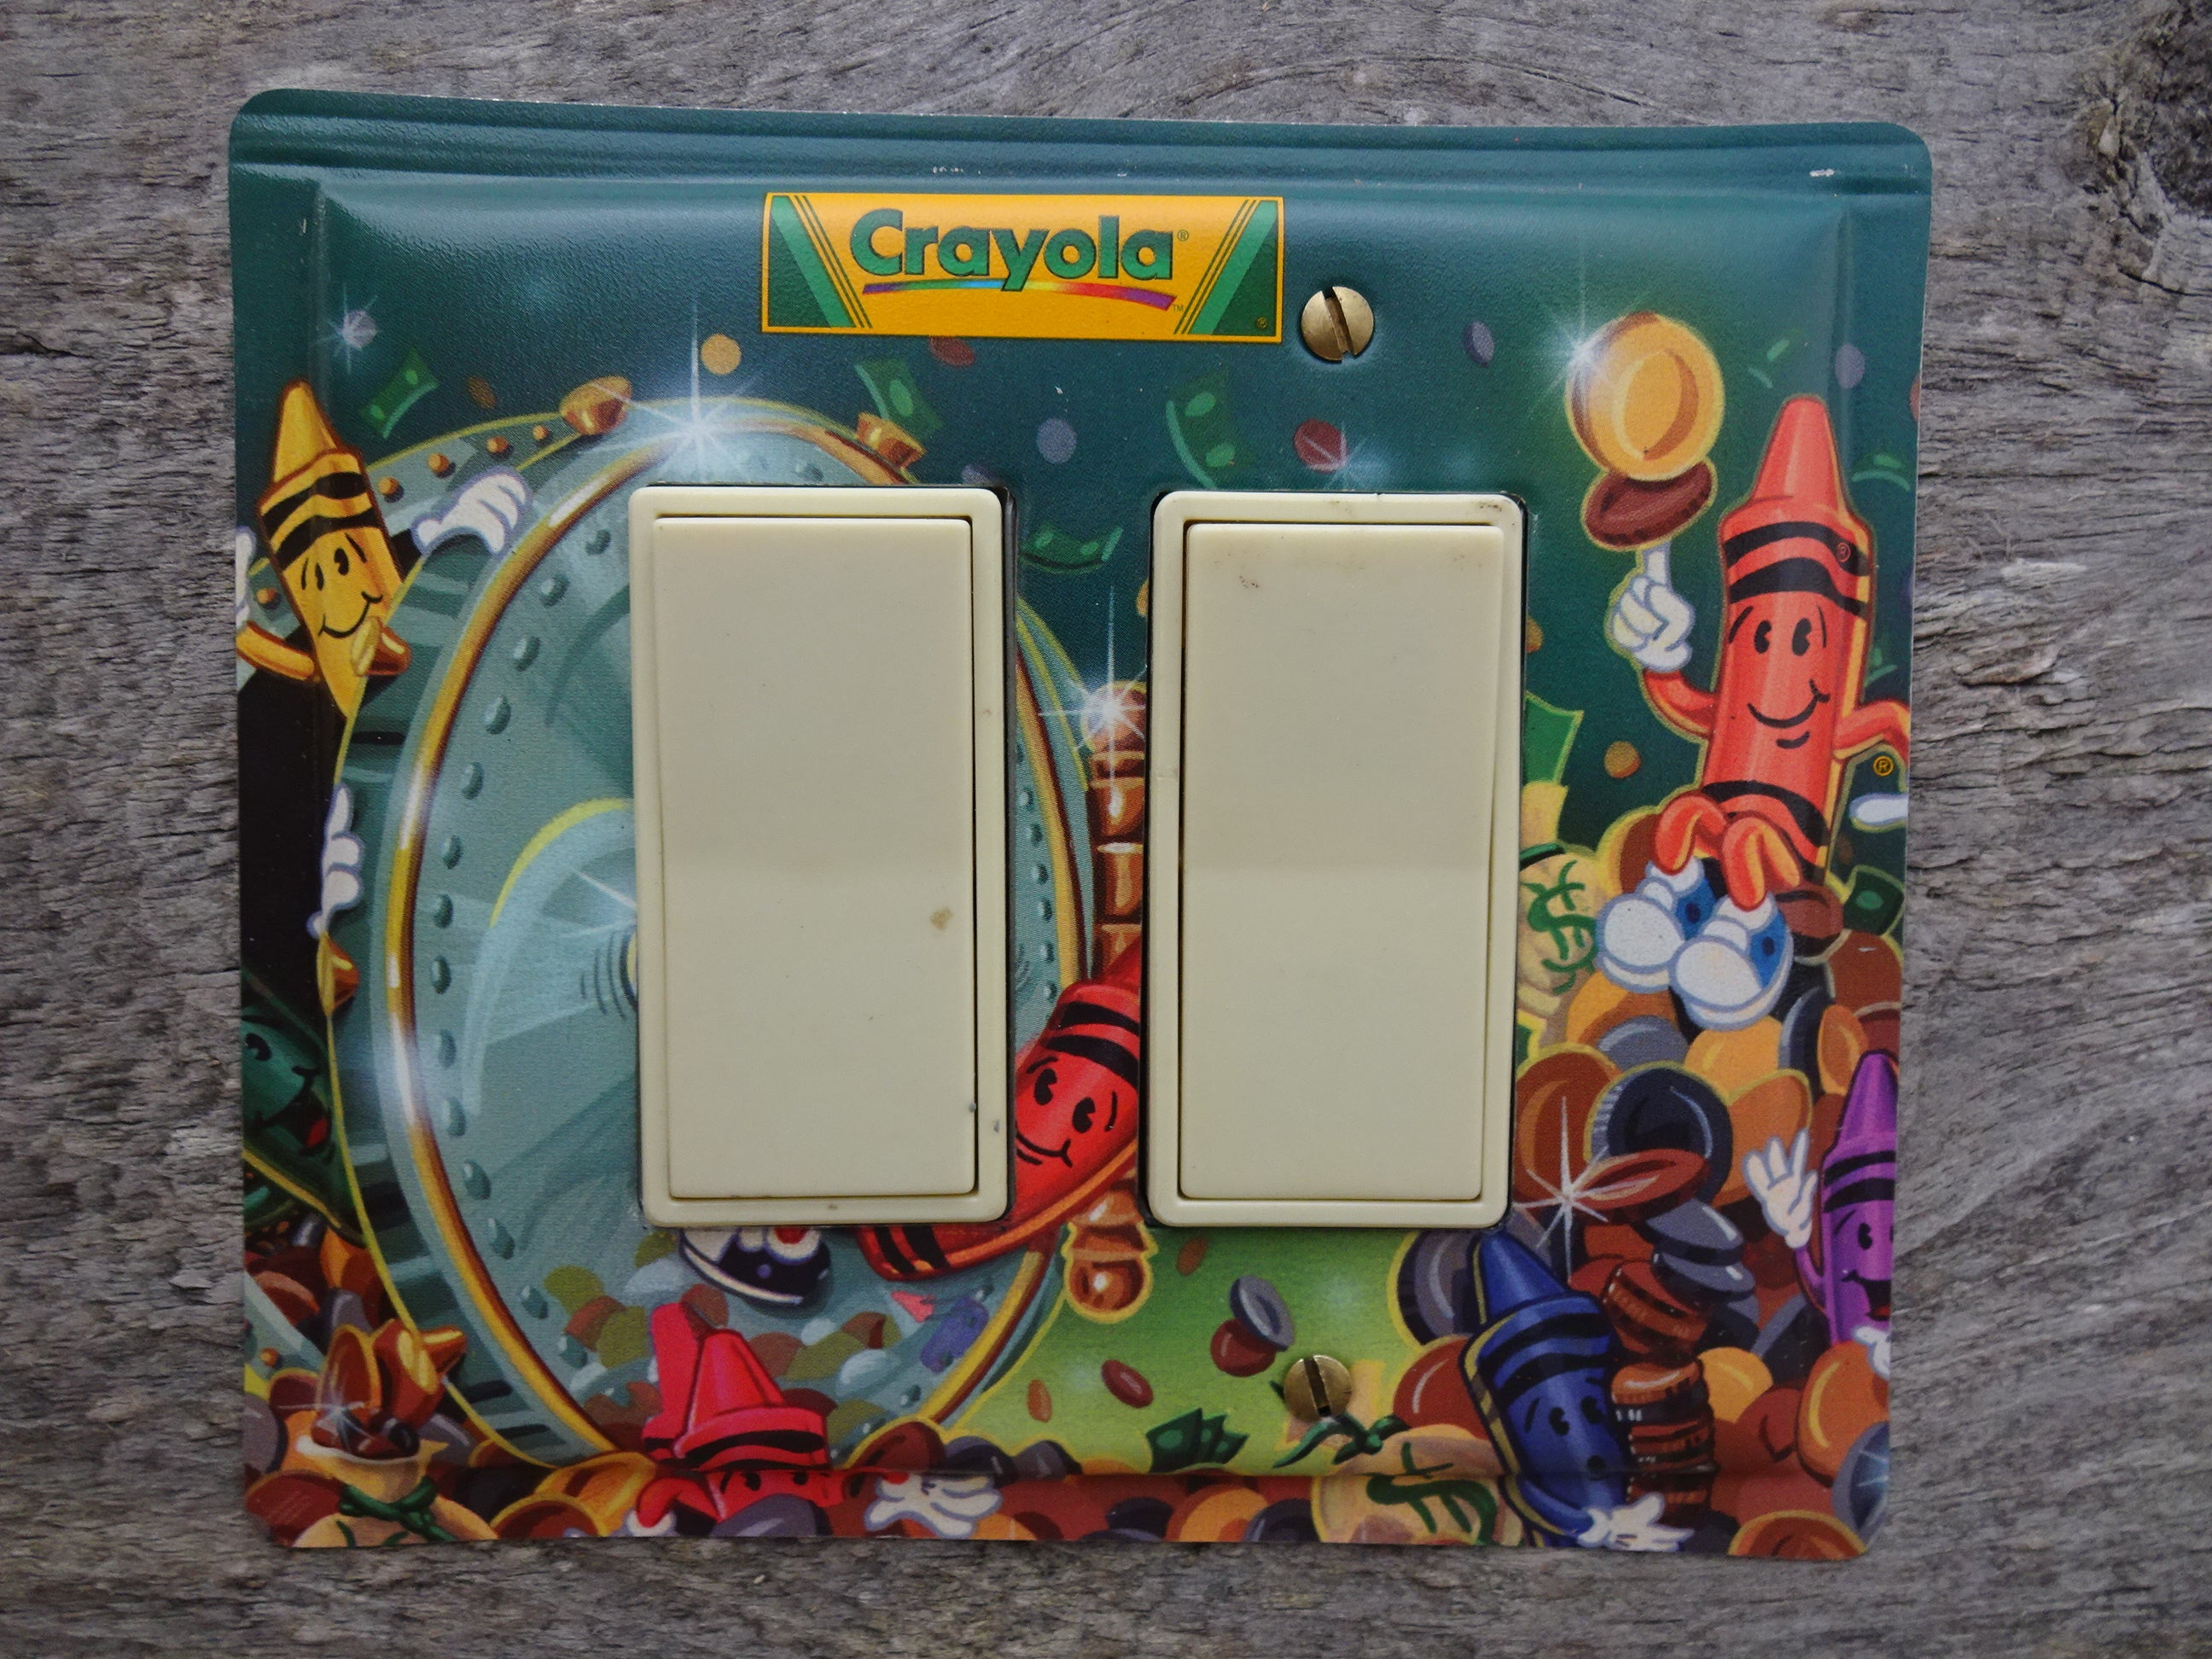 Double Rocker Switch Plate Fits GFCI Crayola Crayons Tin GFC-3135D*